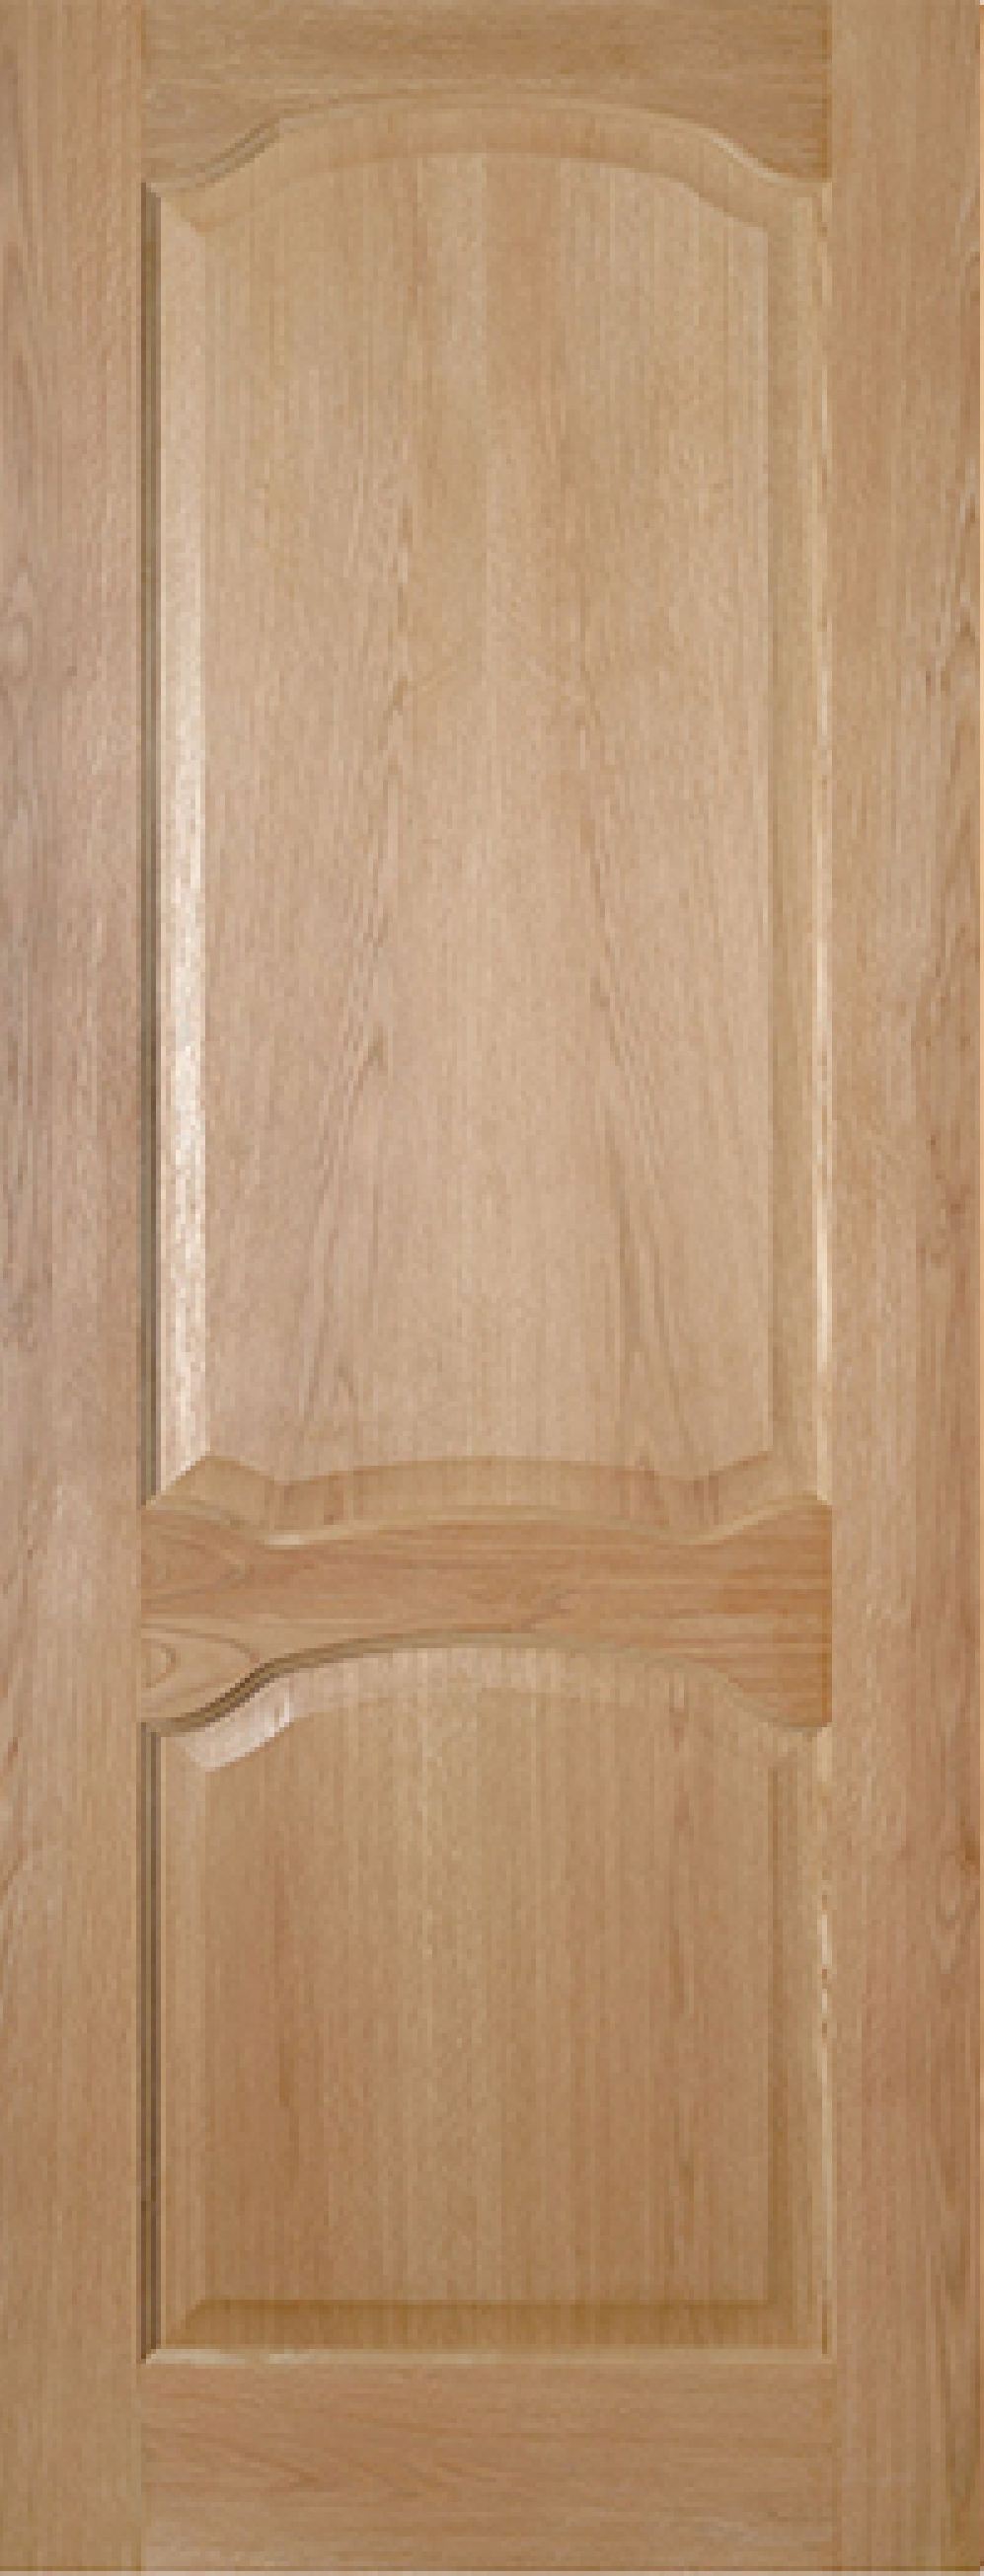 Louis Oak Door - Deanta